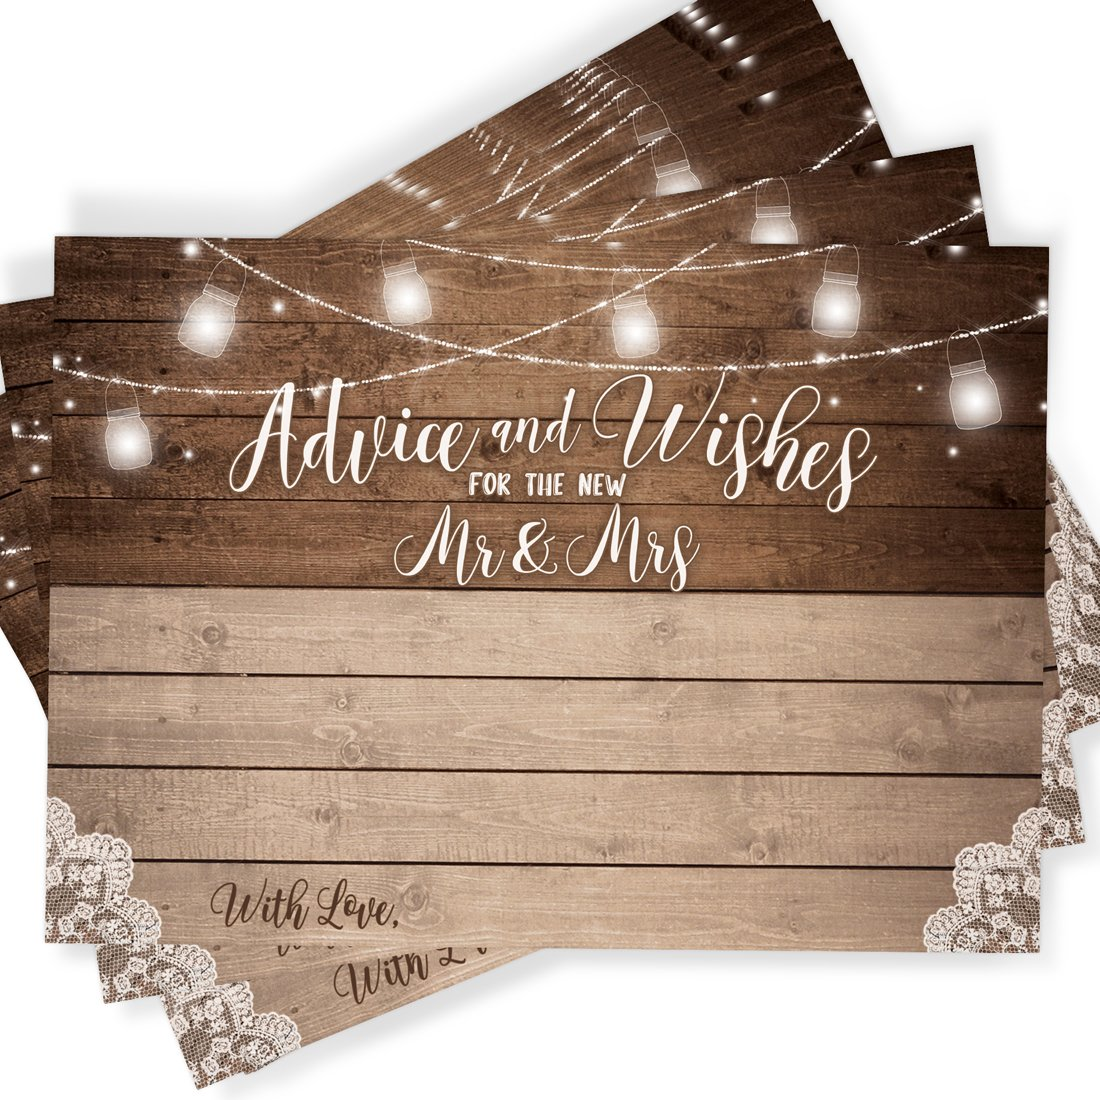 Printed Party 50 Rustic Wedding Advice Cards and Well Wishes for the Bride and Groom | Guest Book Alternative | Bridal Shower Games